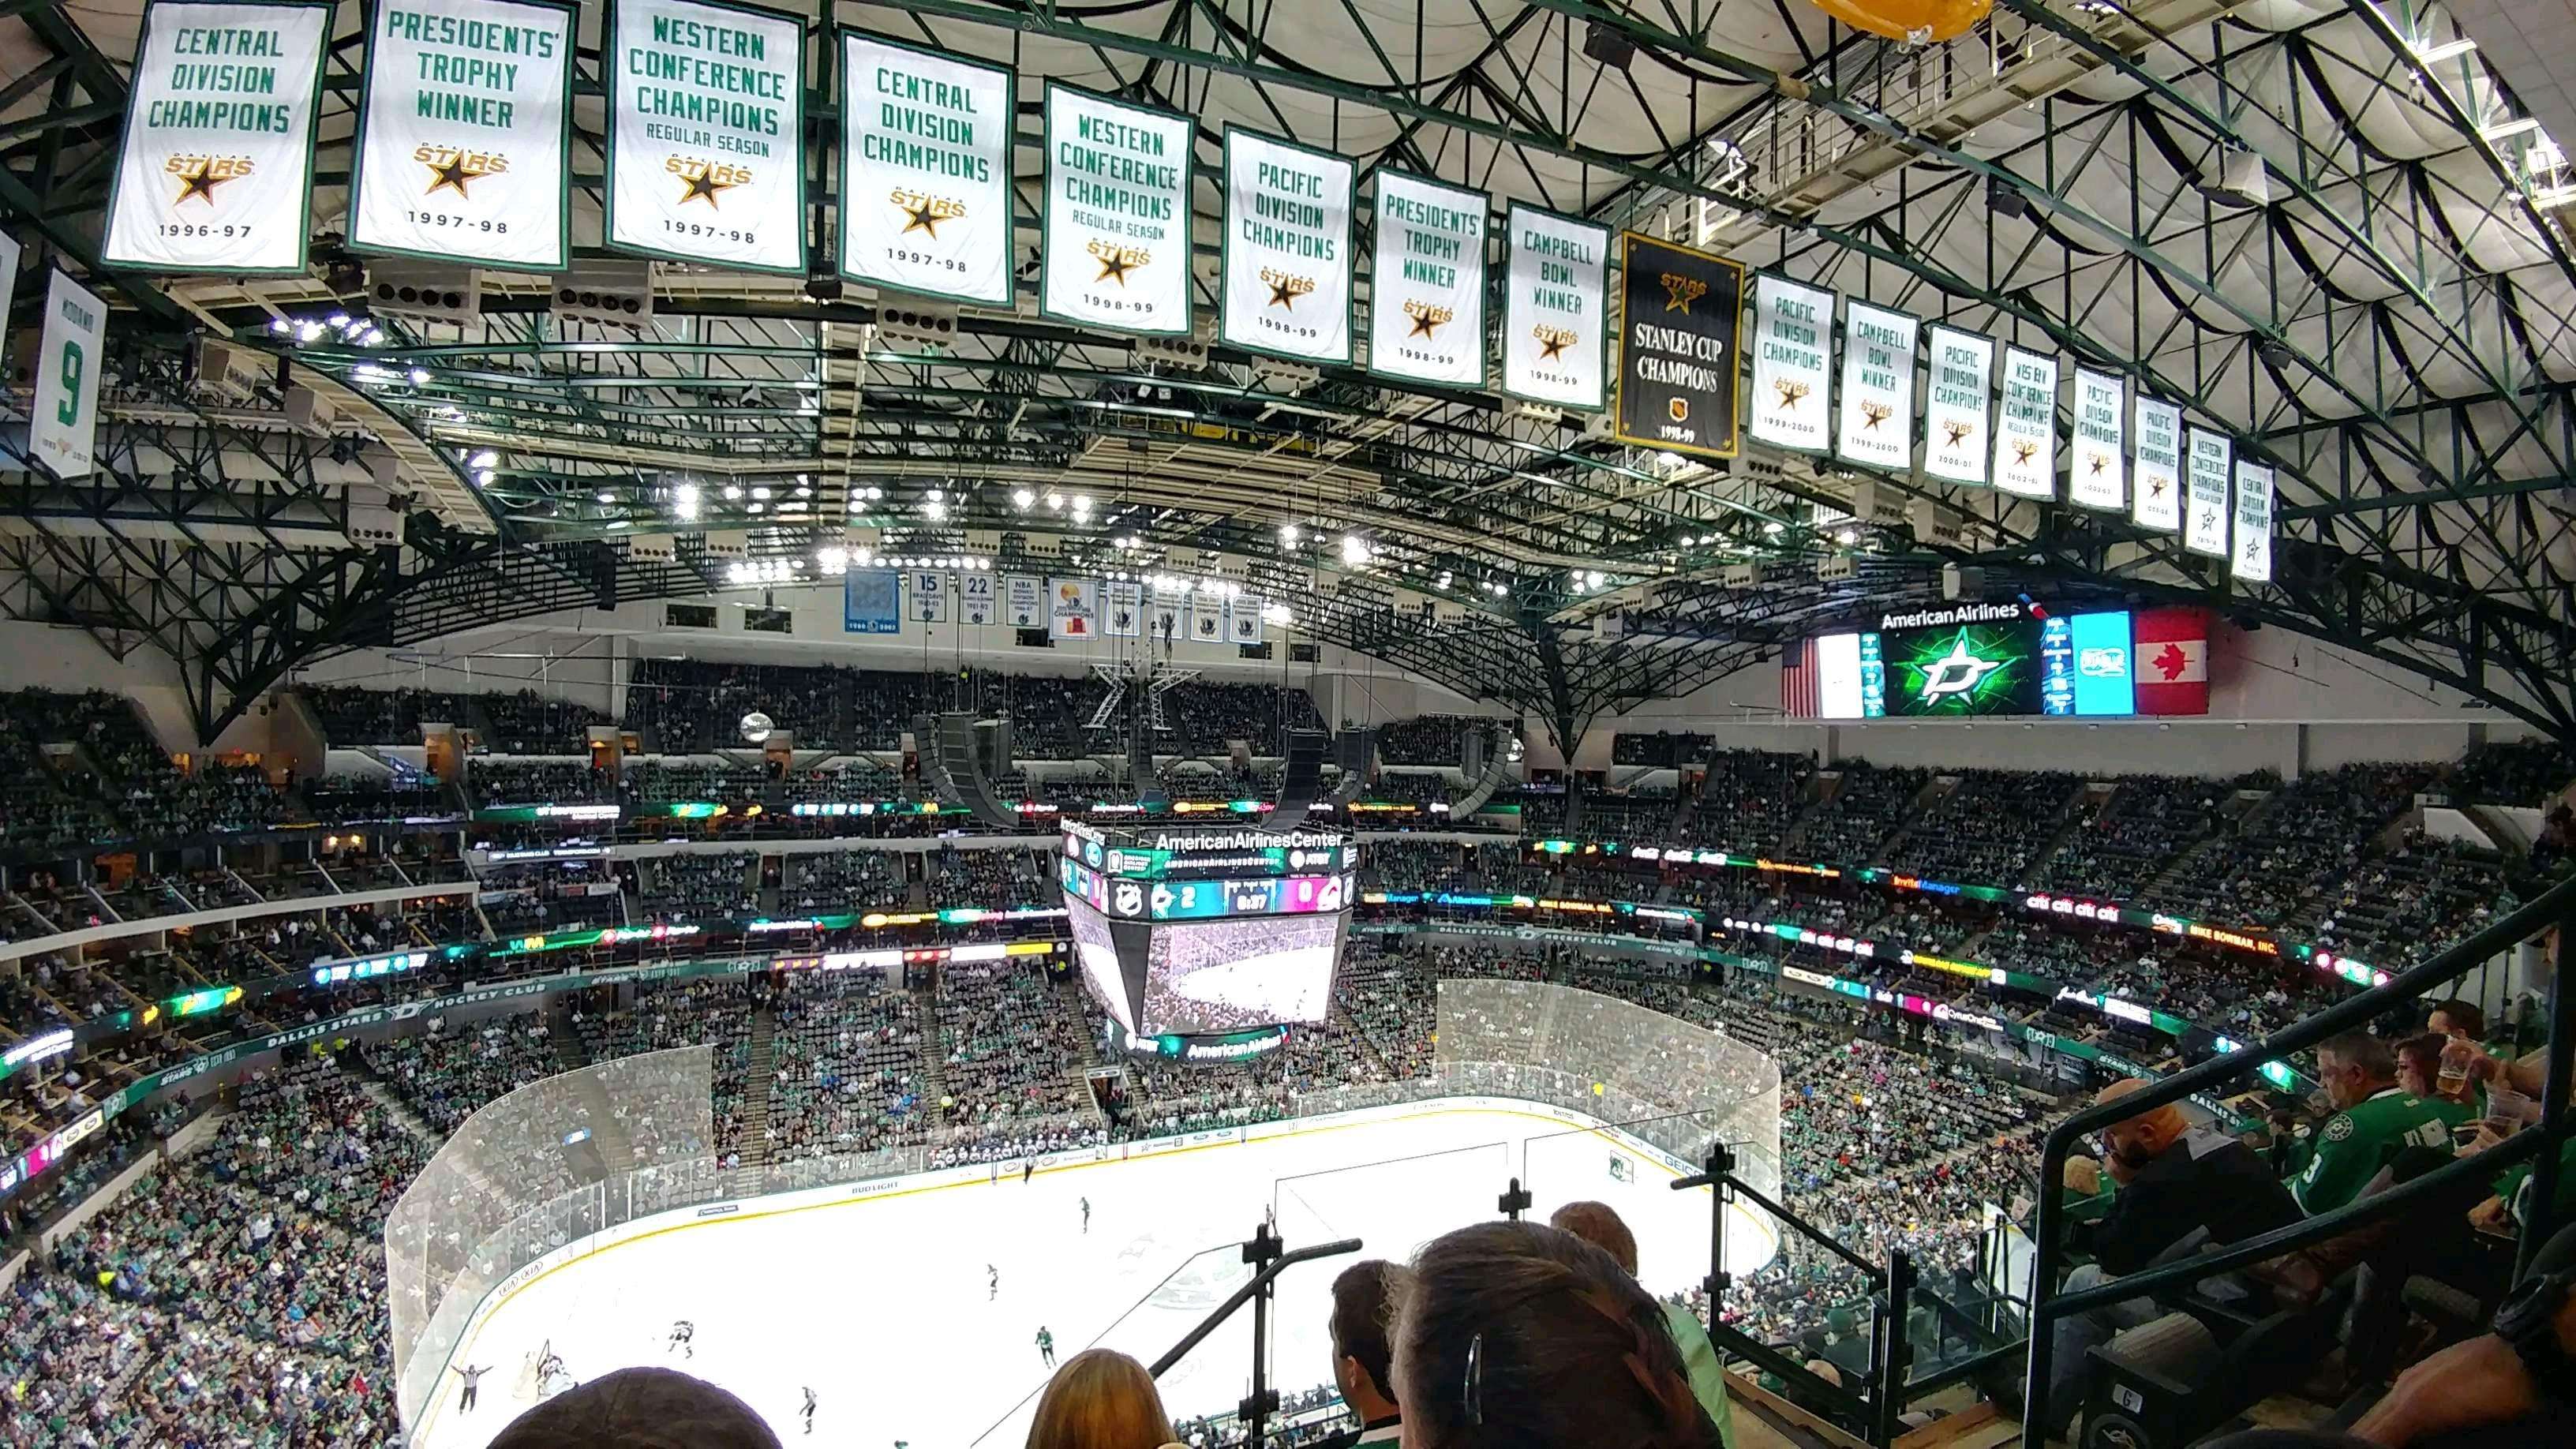 American Airlines Center Section 312 Row J Seat 4